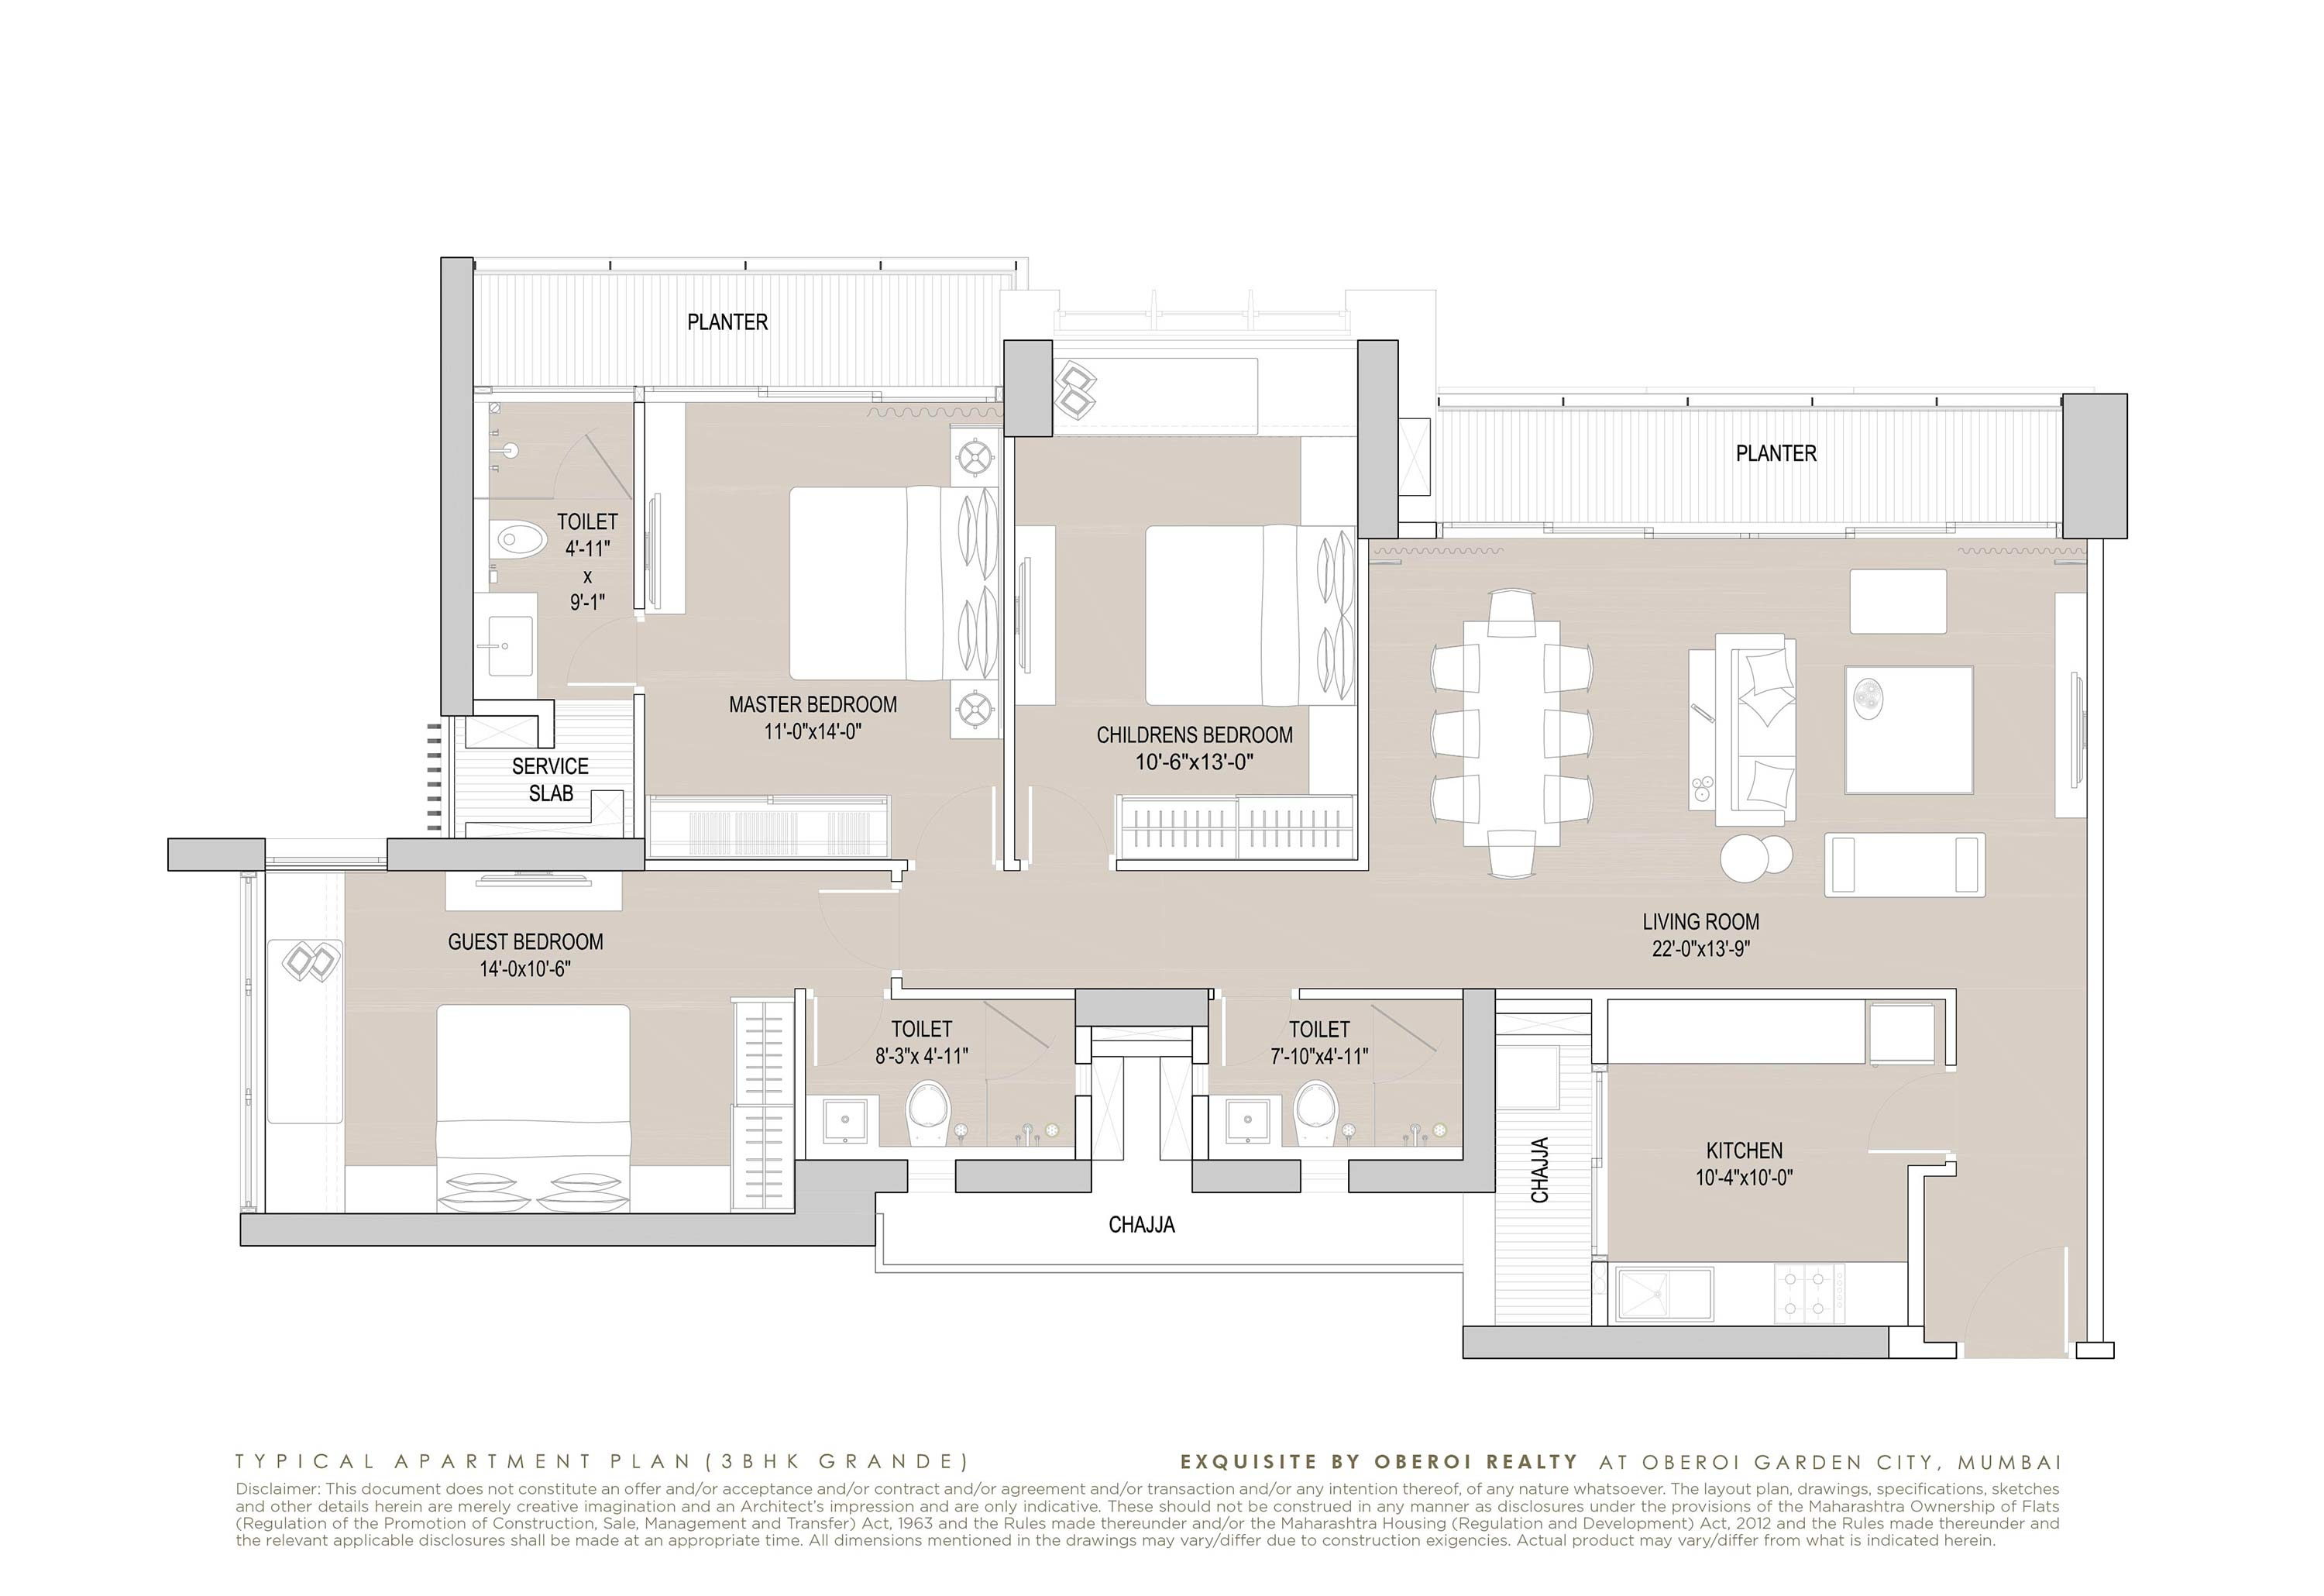 Exquisite: Luxury Flats: Goregaon (E) Mumbai: Floor Plan: 5